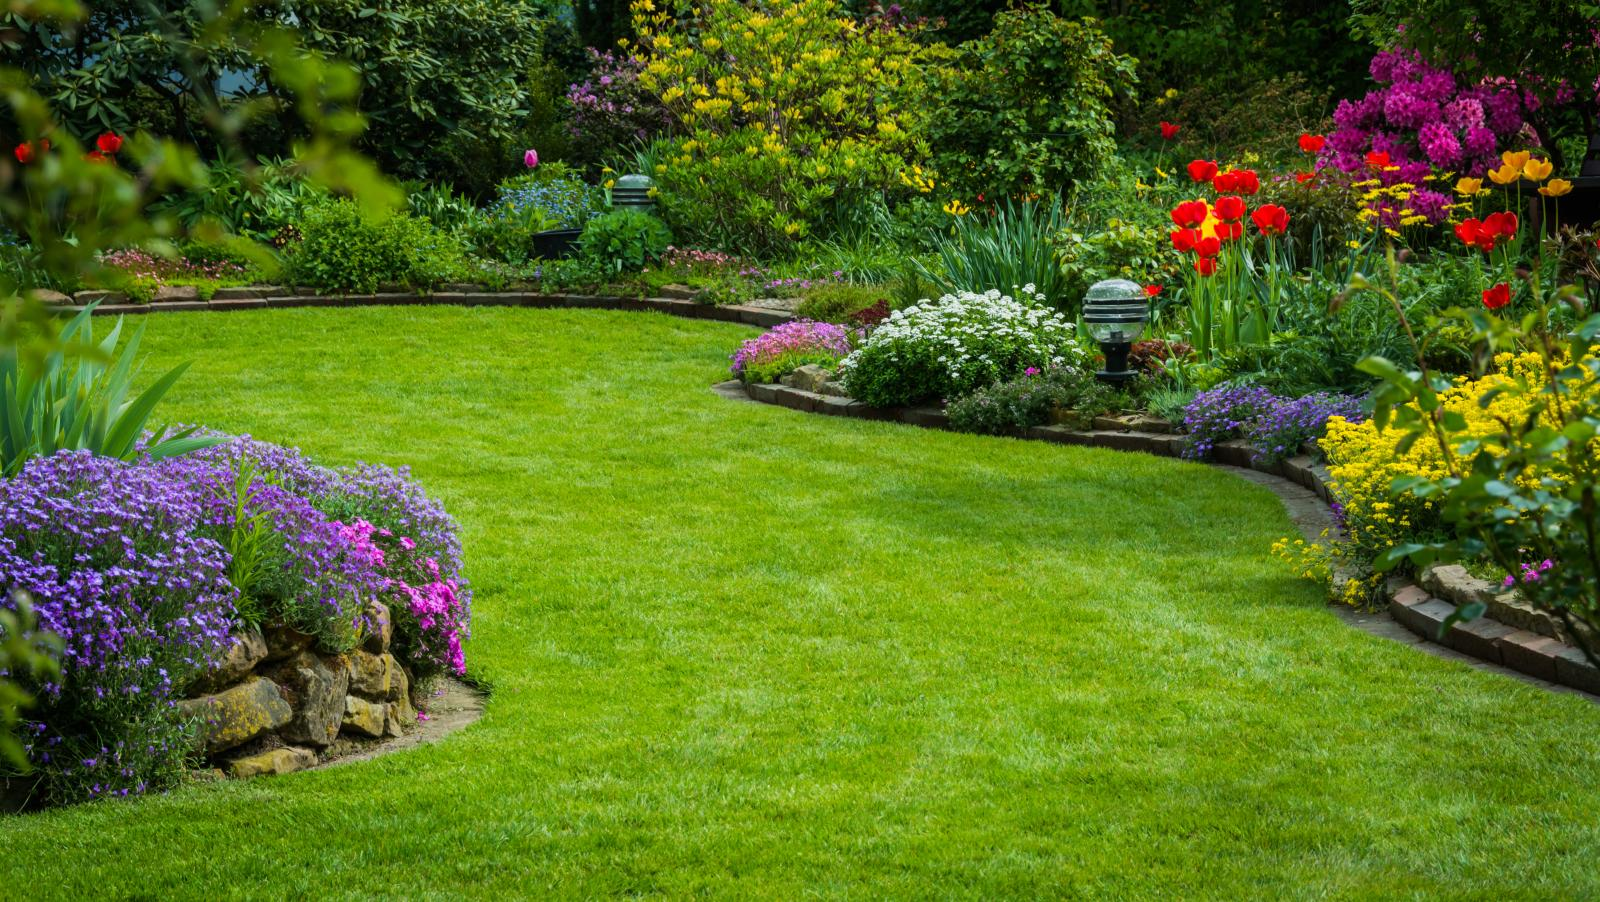 Summer's Coming! Here's Your Gardening Guide for May